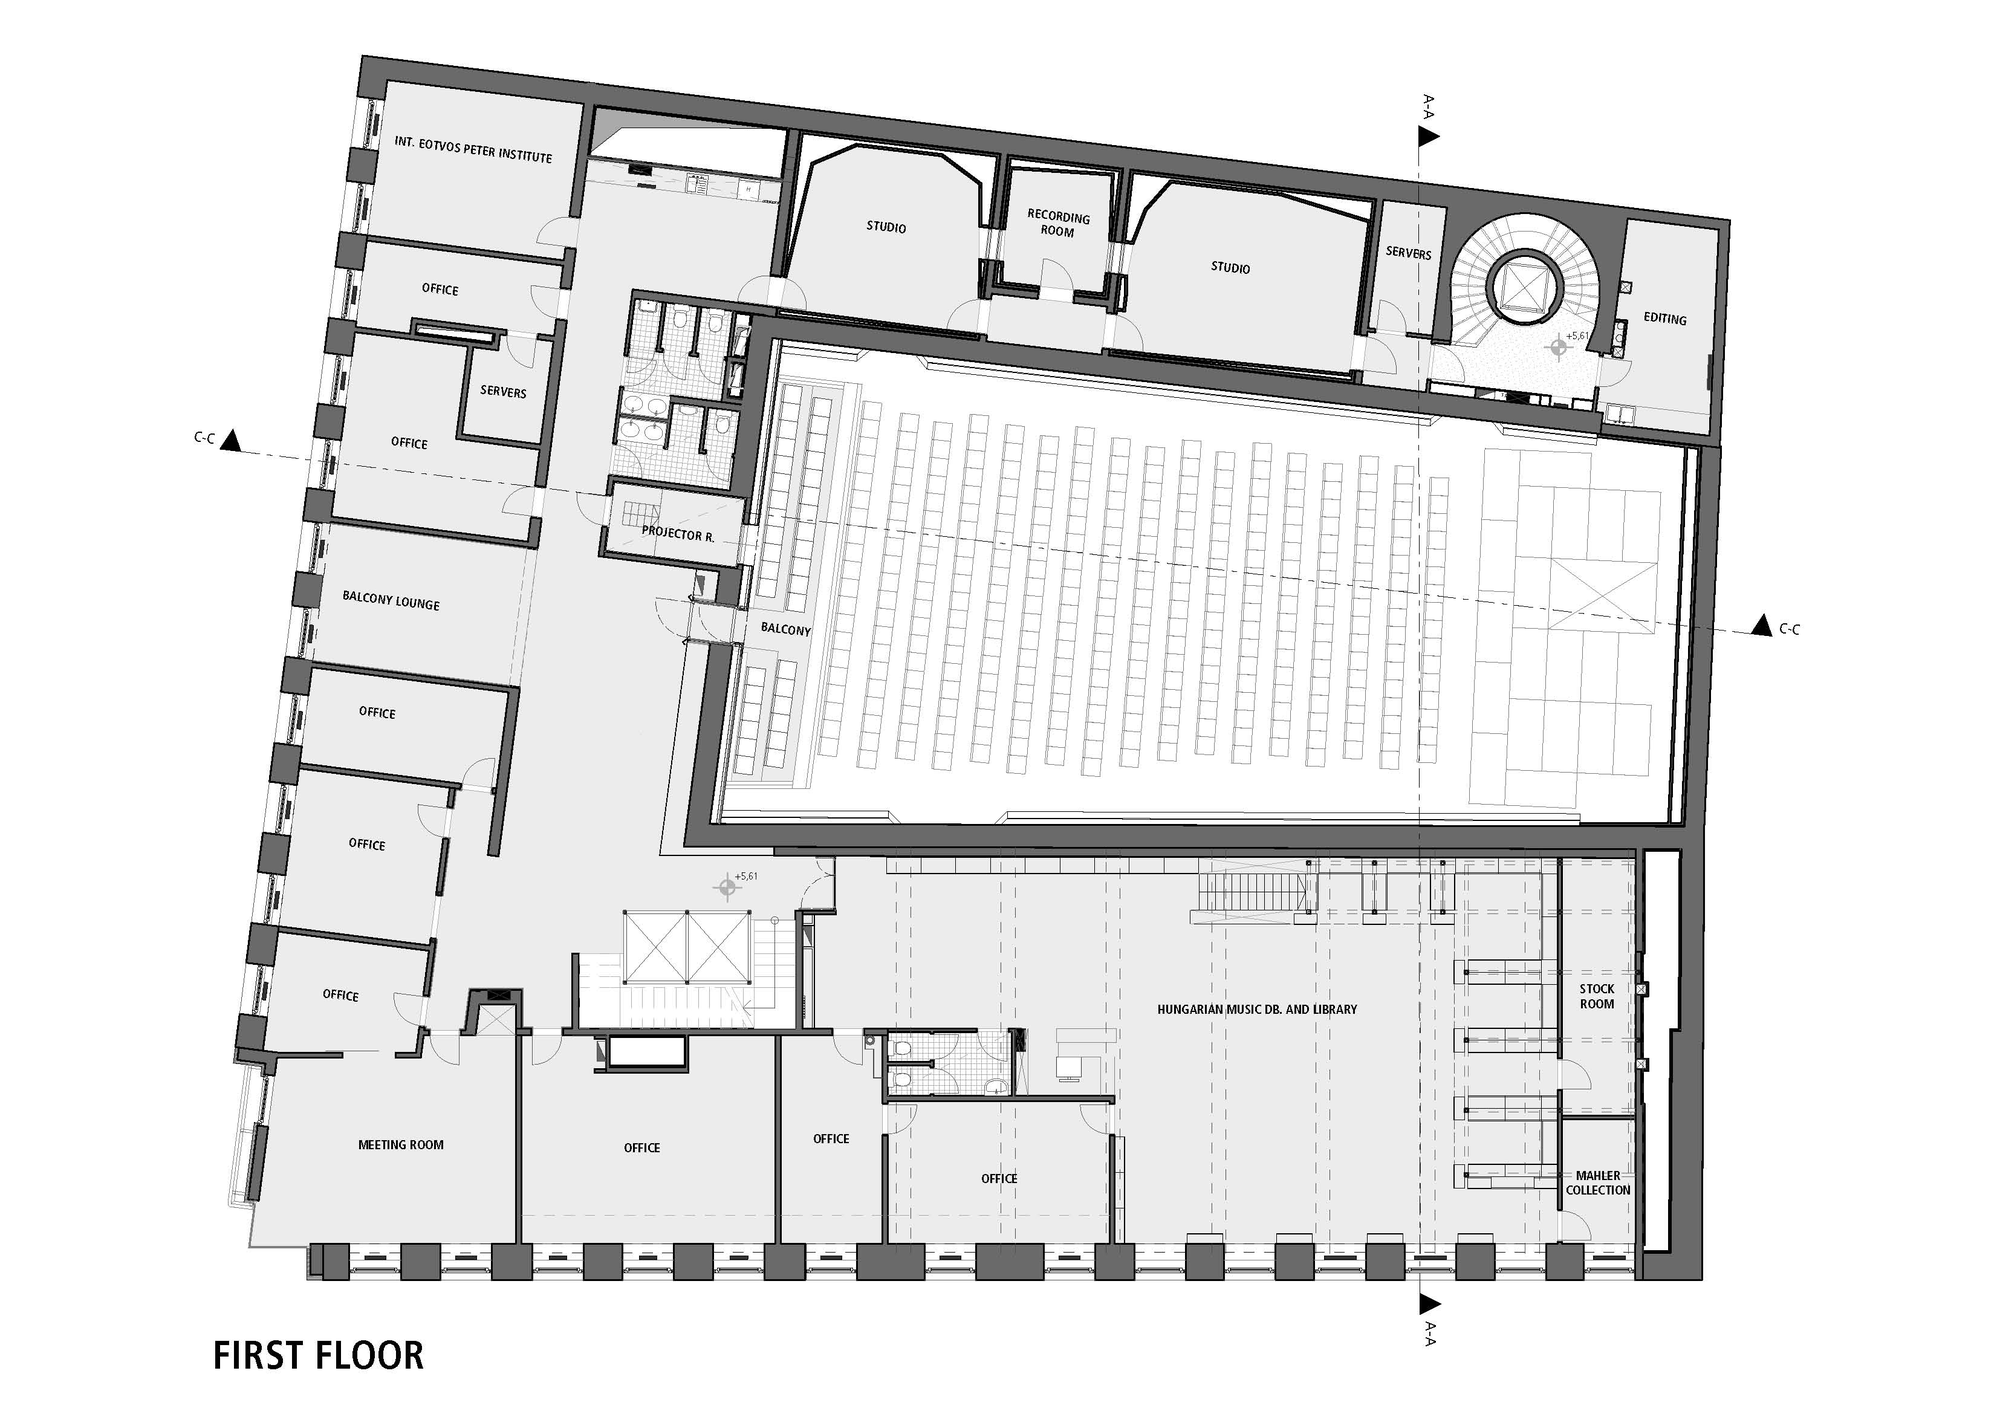 Radio City Music Hall Floor Plan Galerie K Př 237 Spěvku Budapest Music Center Architektura